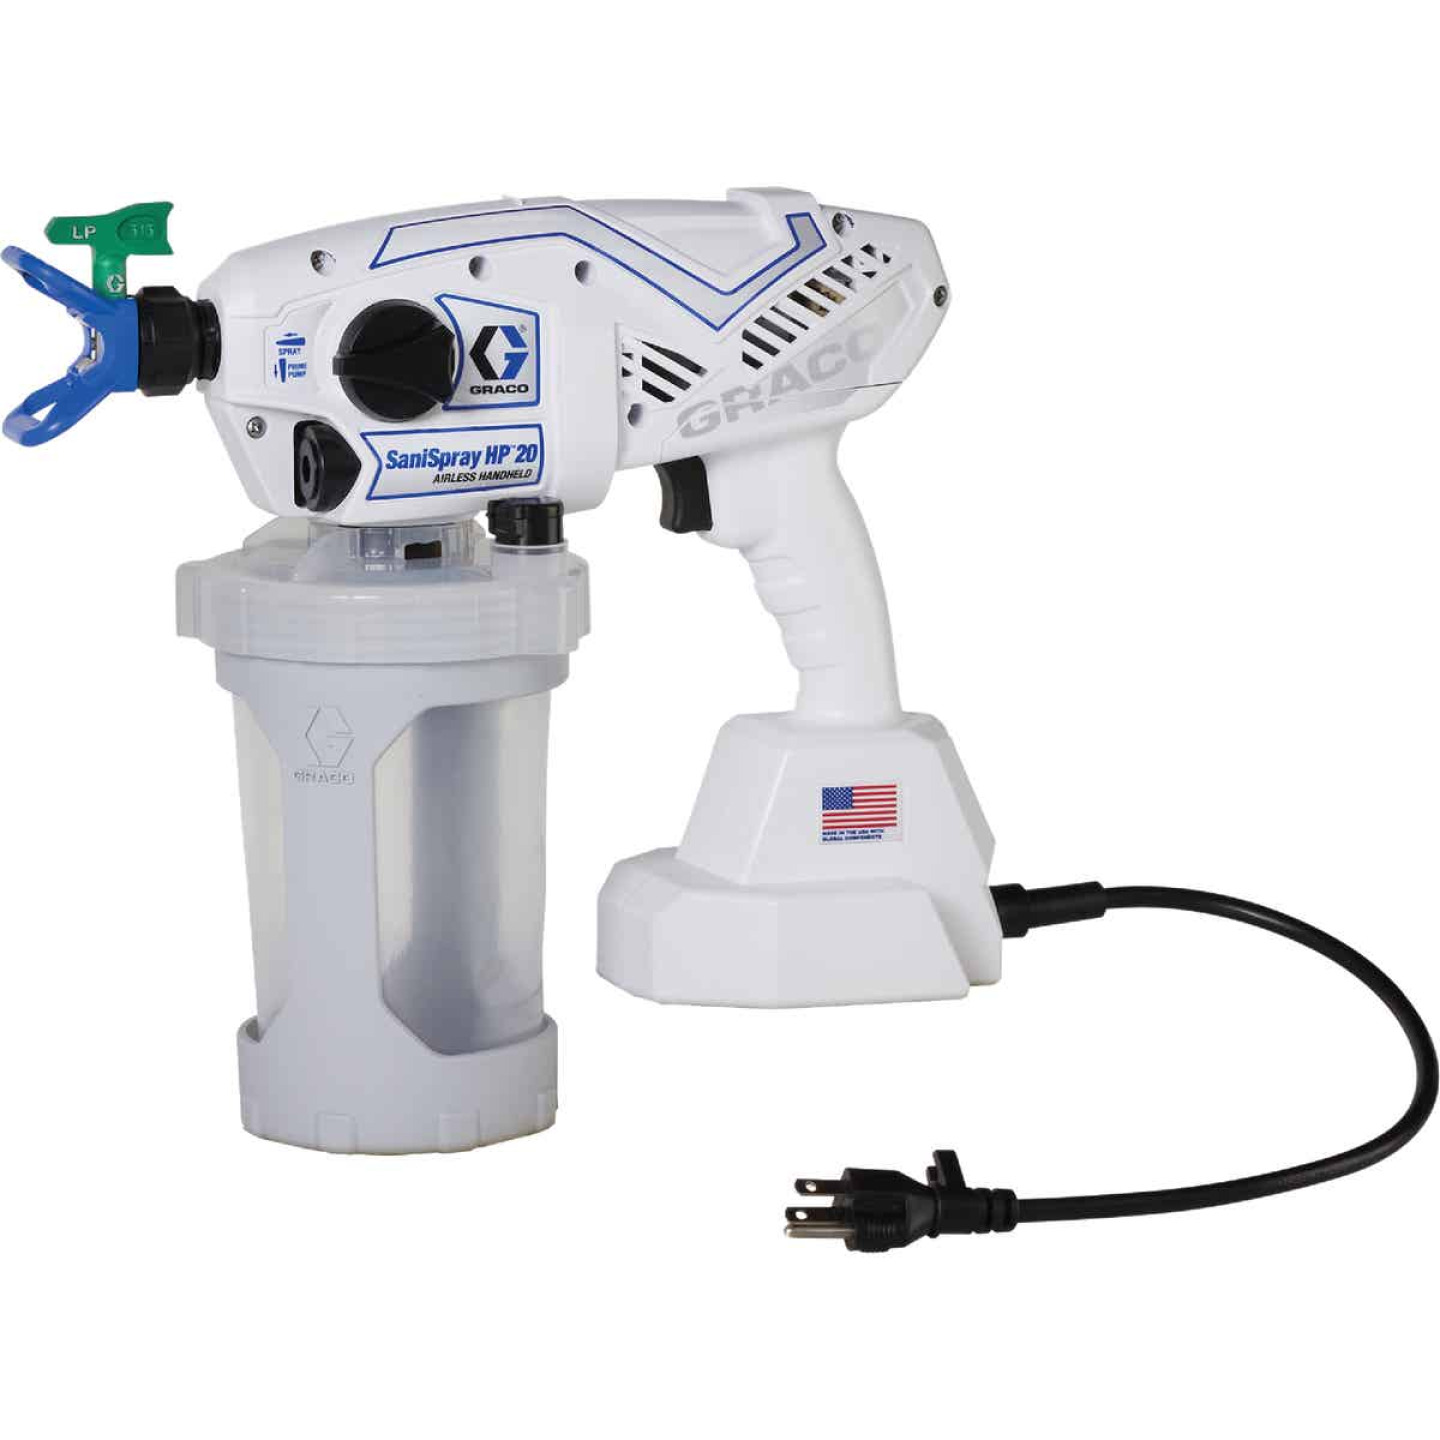 Graco SaniSpray HP20 Corded Airless Handheld Disinfectant Sprayer Image 1